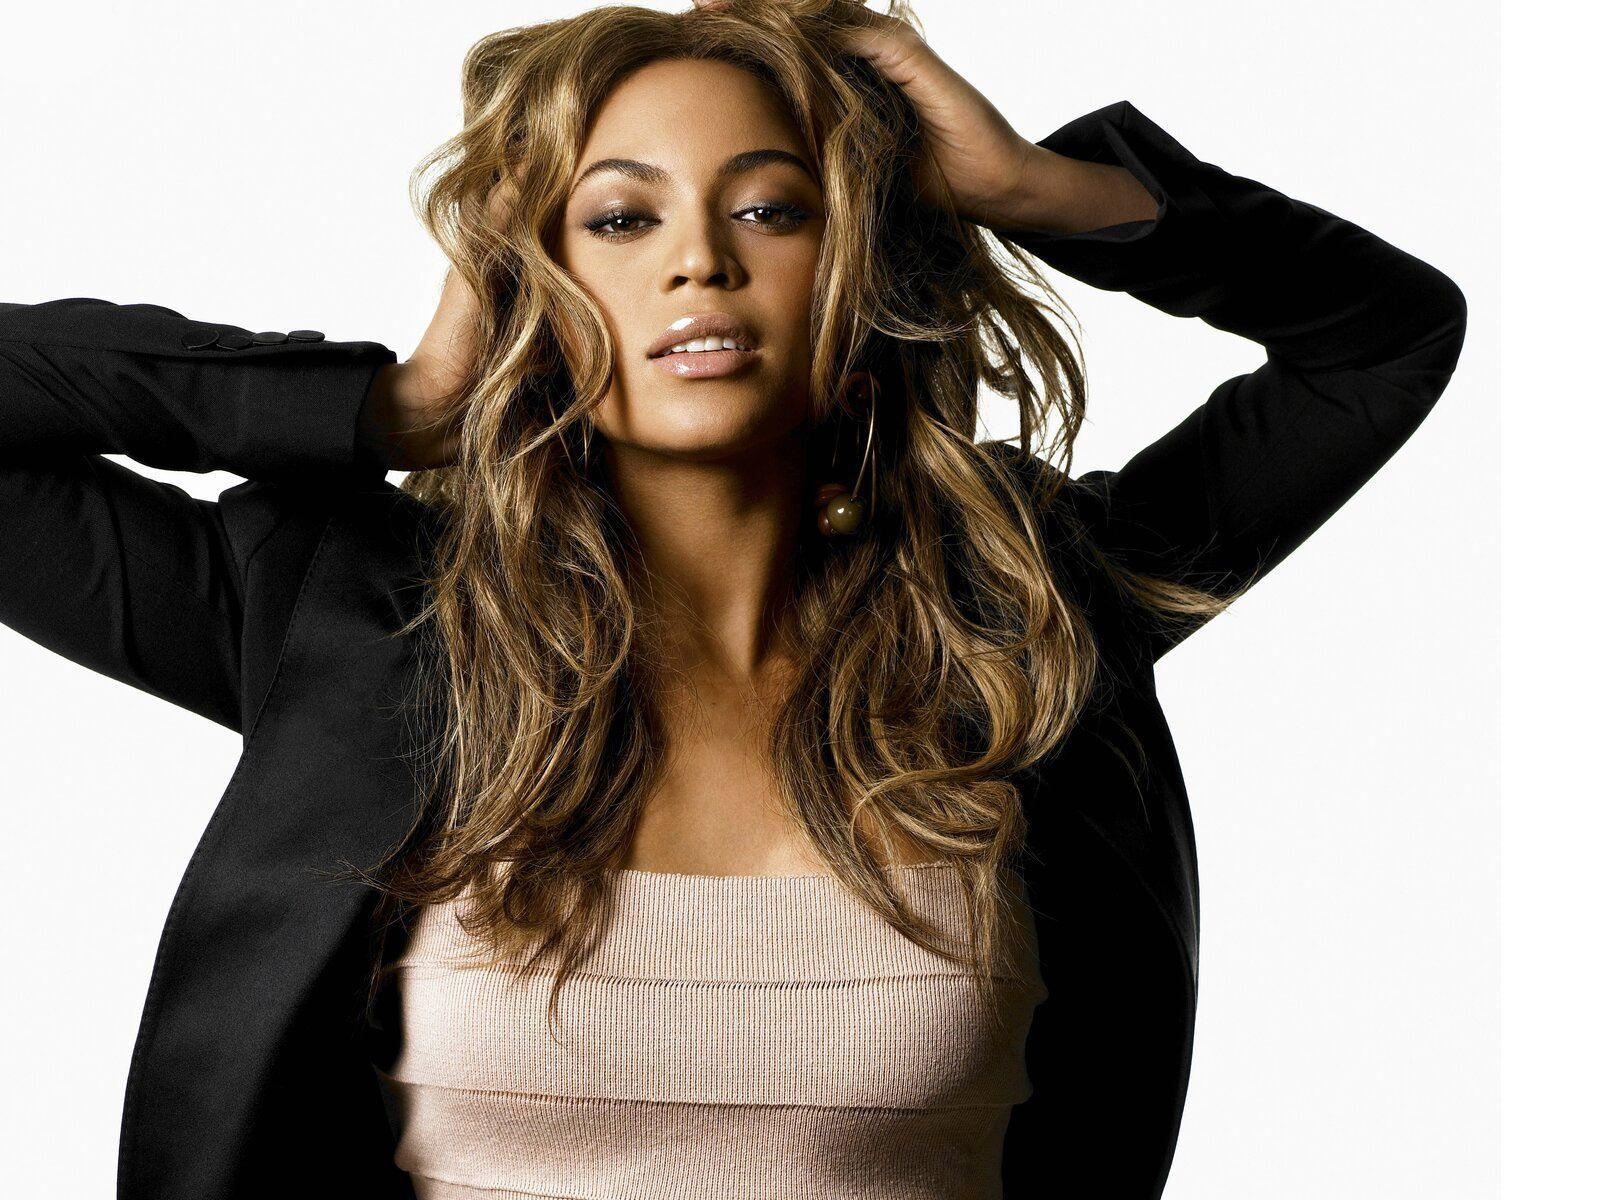 Beyonce New Wallpapers 1600x1200 3148 Full HD Wallpapers Desktop